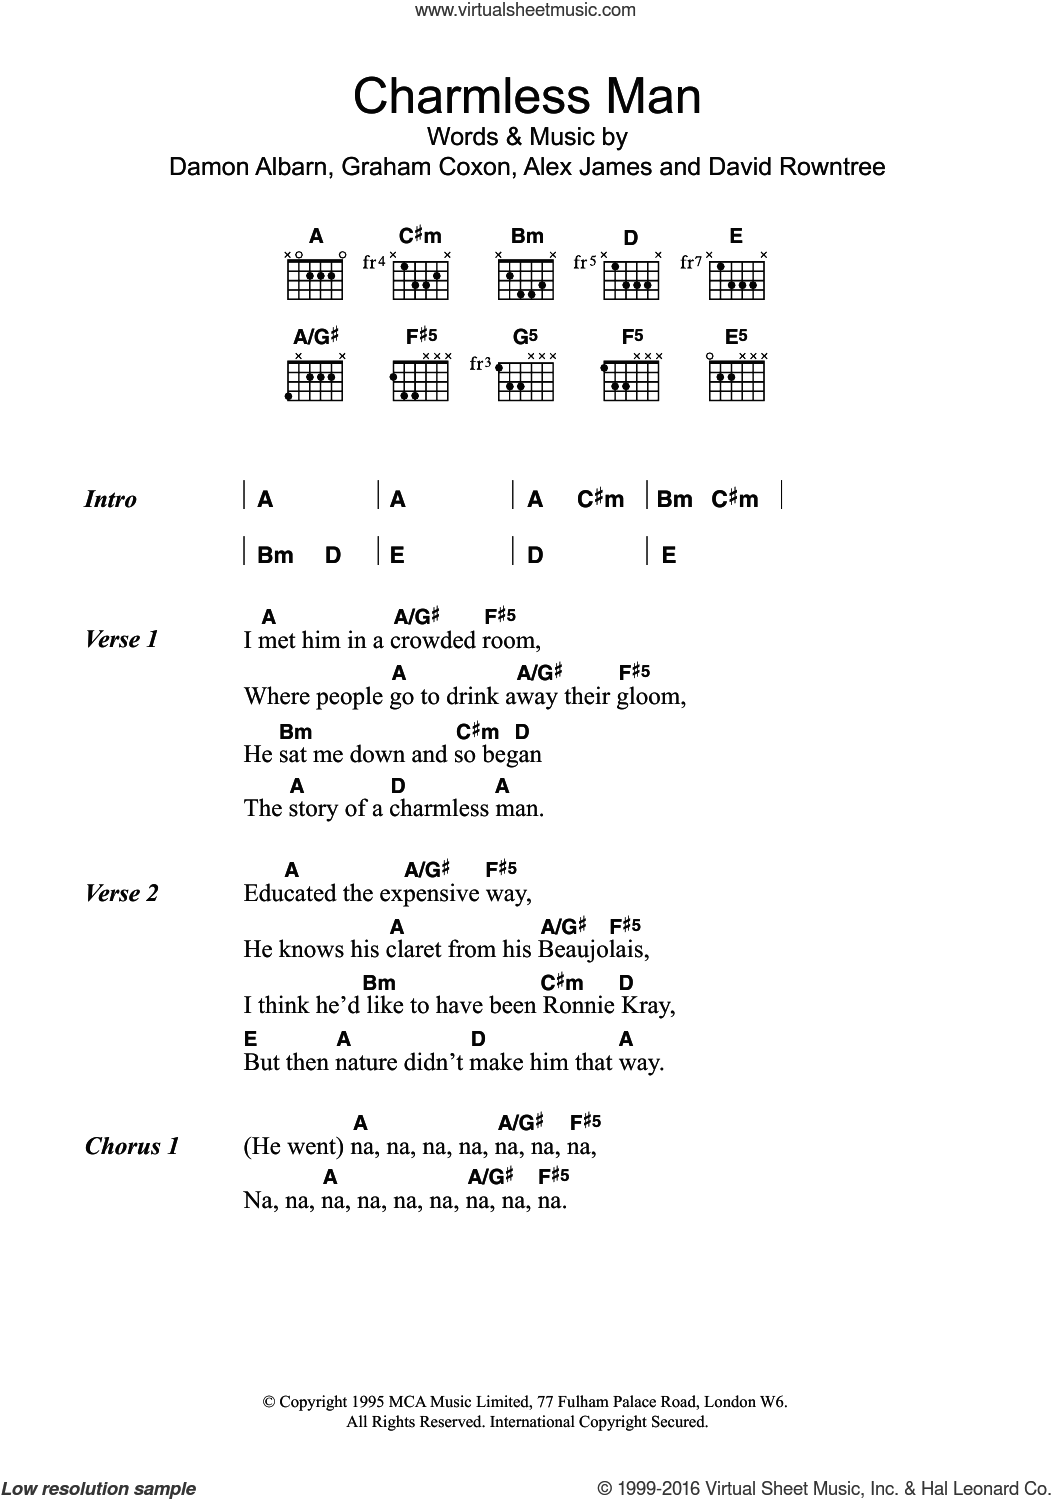 Charmless Man sheet music for guitar (chords) by Blur, Alex James, Damon Albarn, David Rowntree and Graham Coxon, intermediate skill level